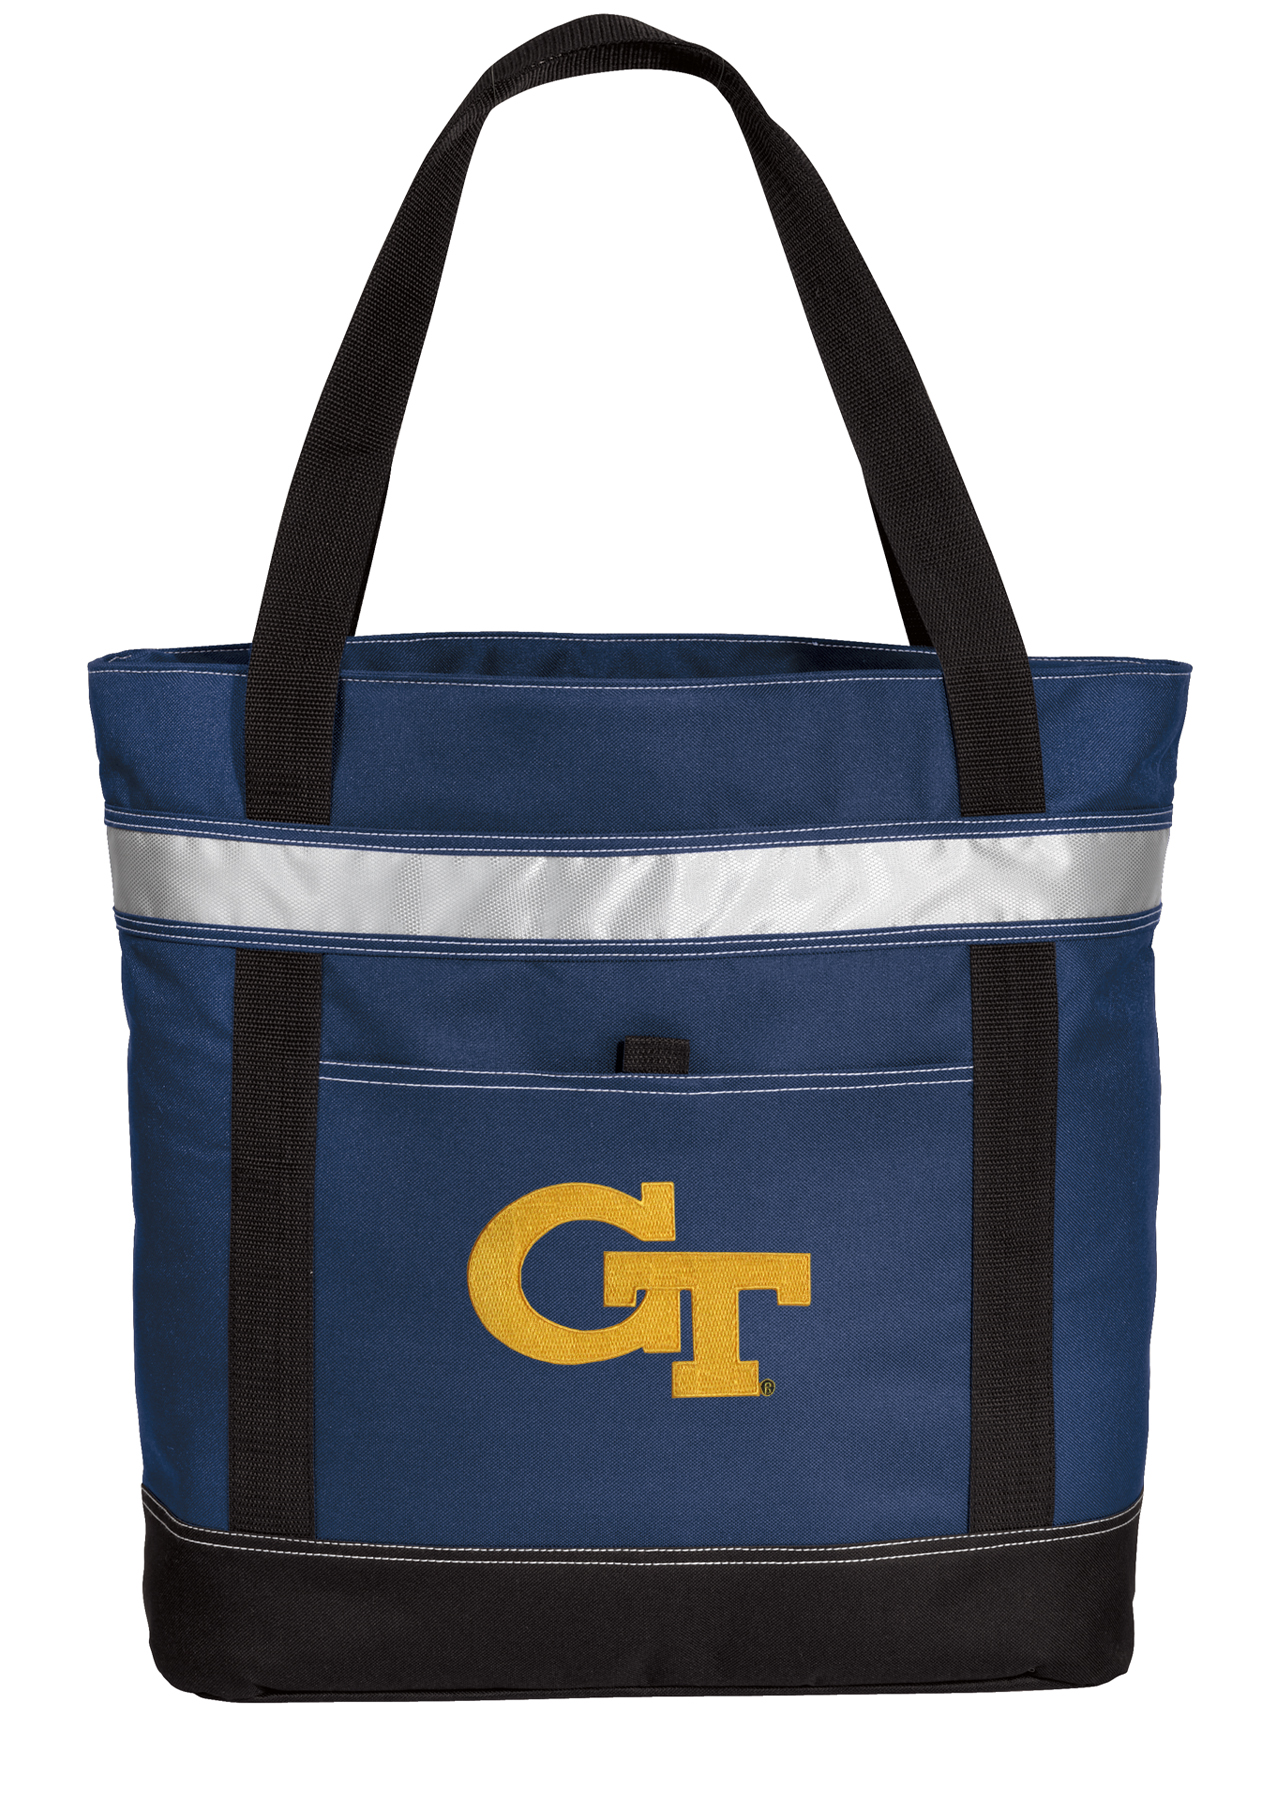 Insulated Georgia Tech Shopping Bag Large Georgia Tech Cooler Bags by